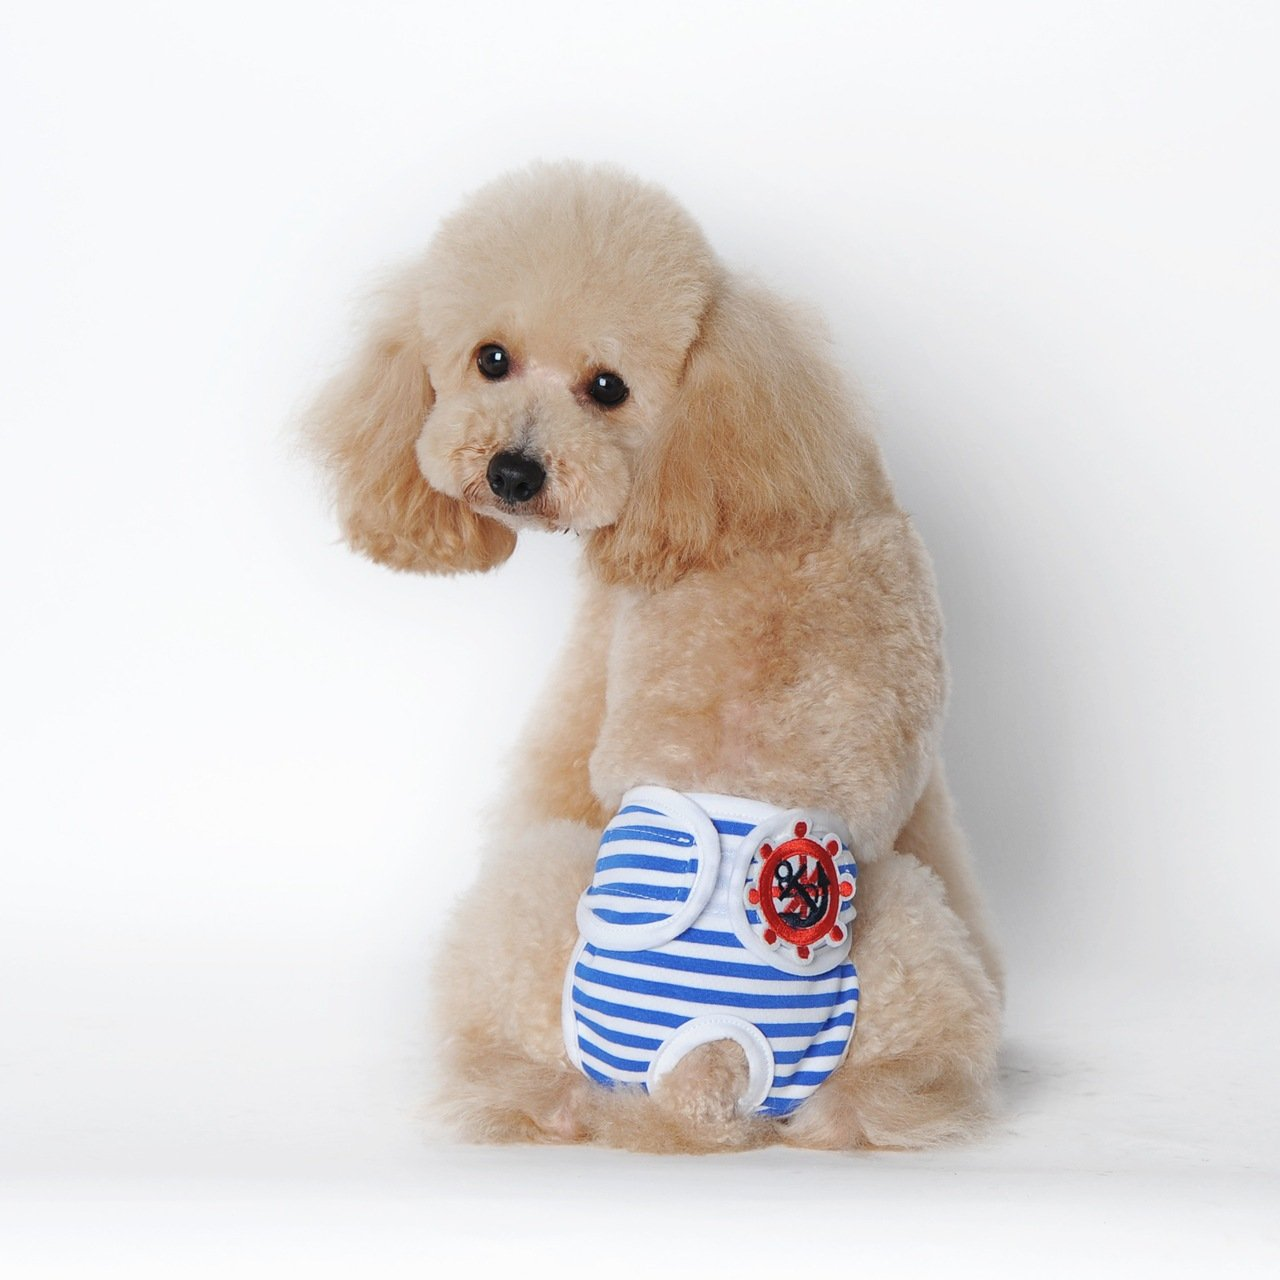 bluee XX-Large bluee XX-Large Dogs Diaper, Pet Dog Striped Physiological Sanitary Pants Diaper Dog Clothes Pants Female Dog Diapers Dog Striped Physiological Pants Pet Dog Health,bluee,XXL